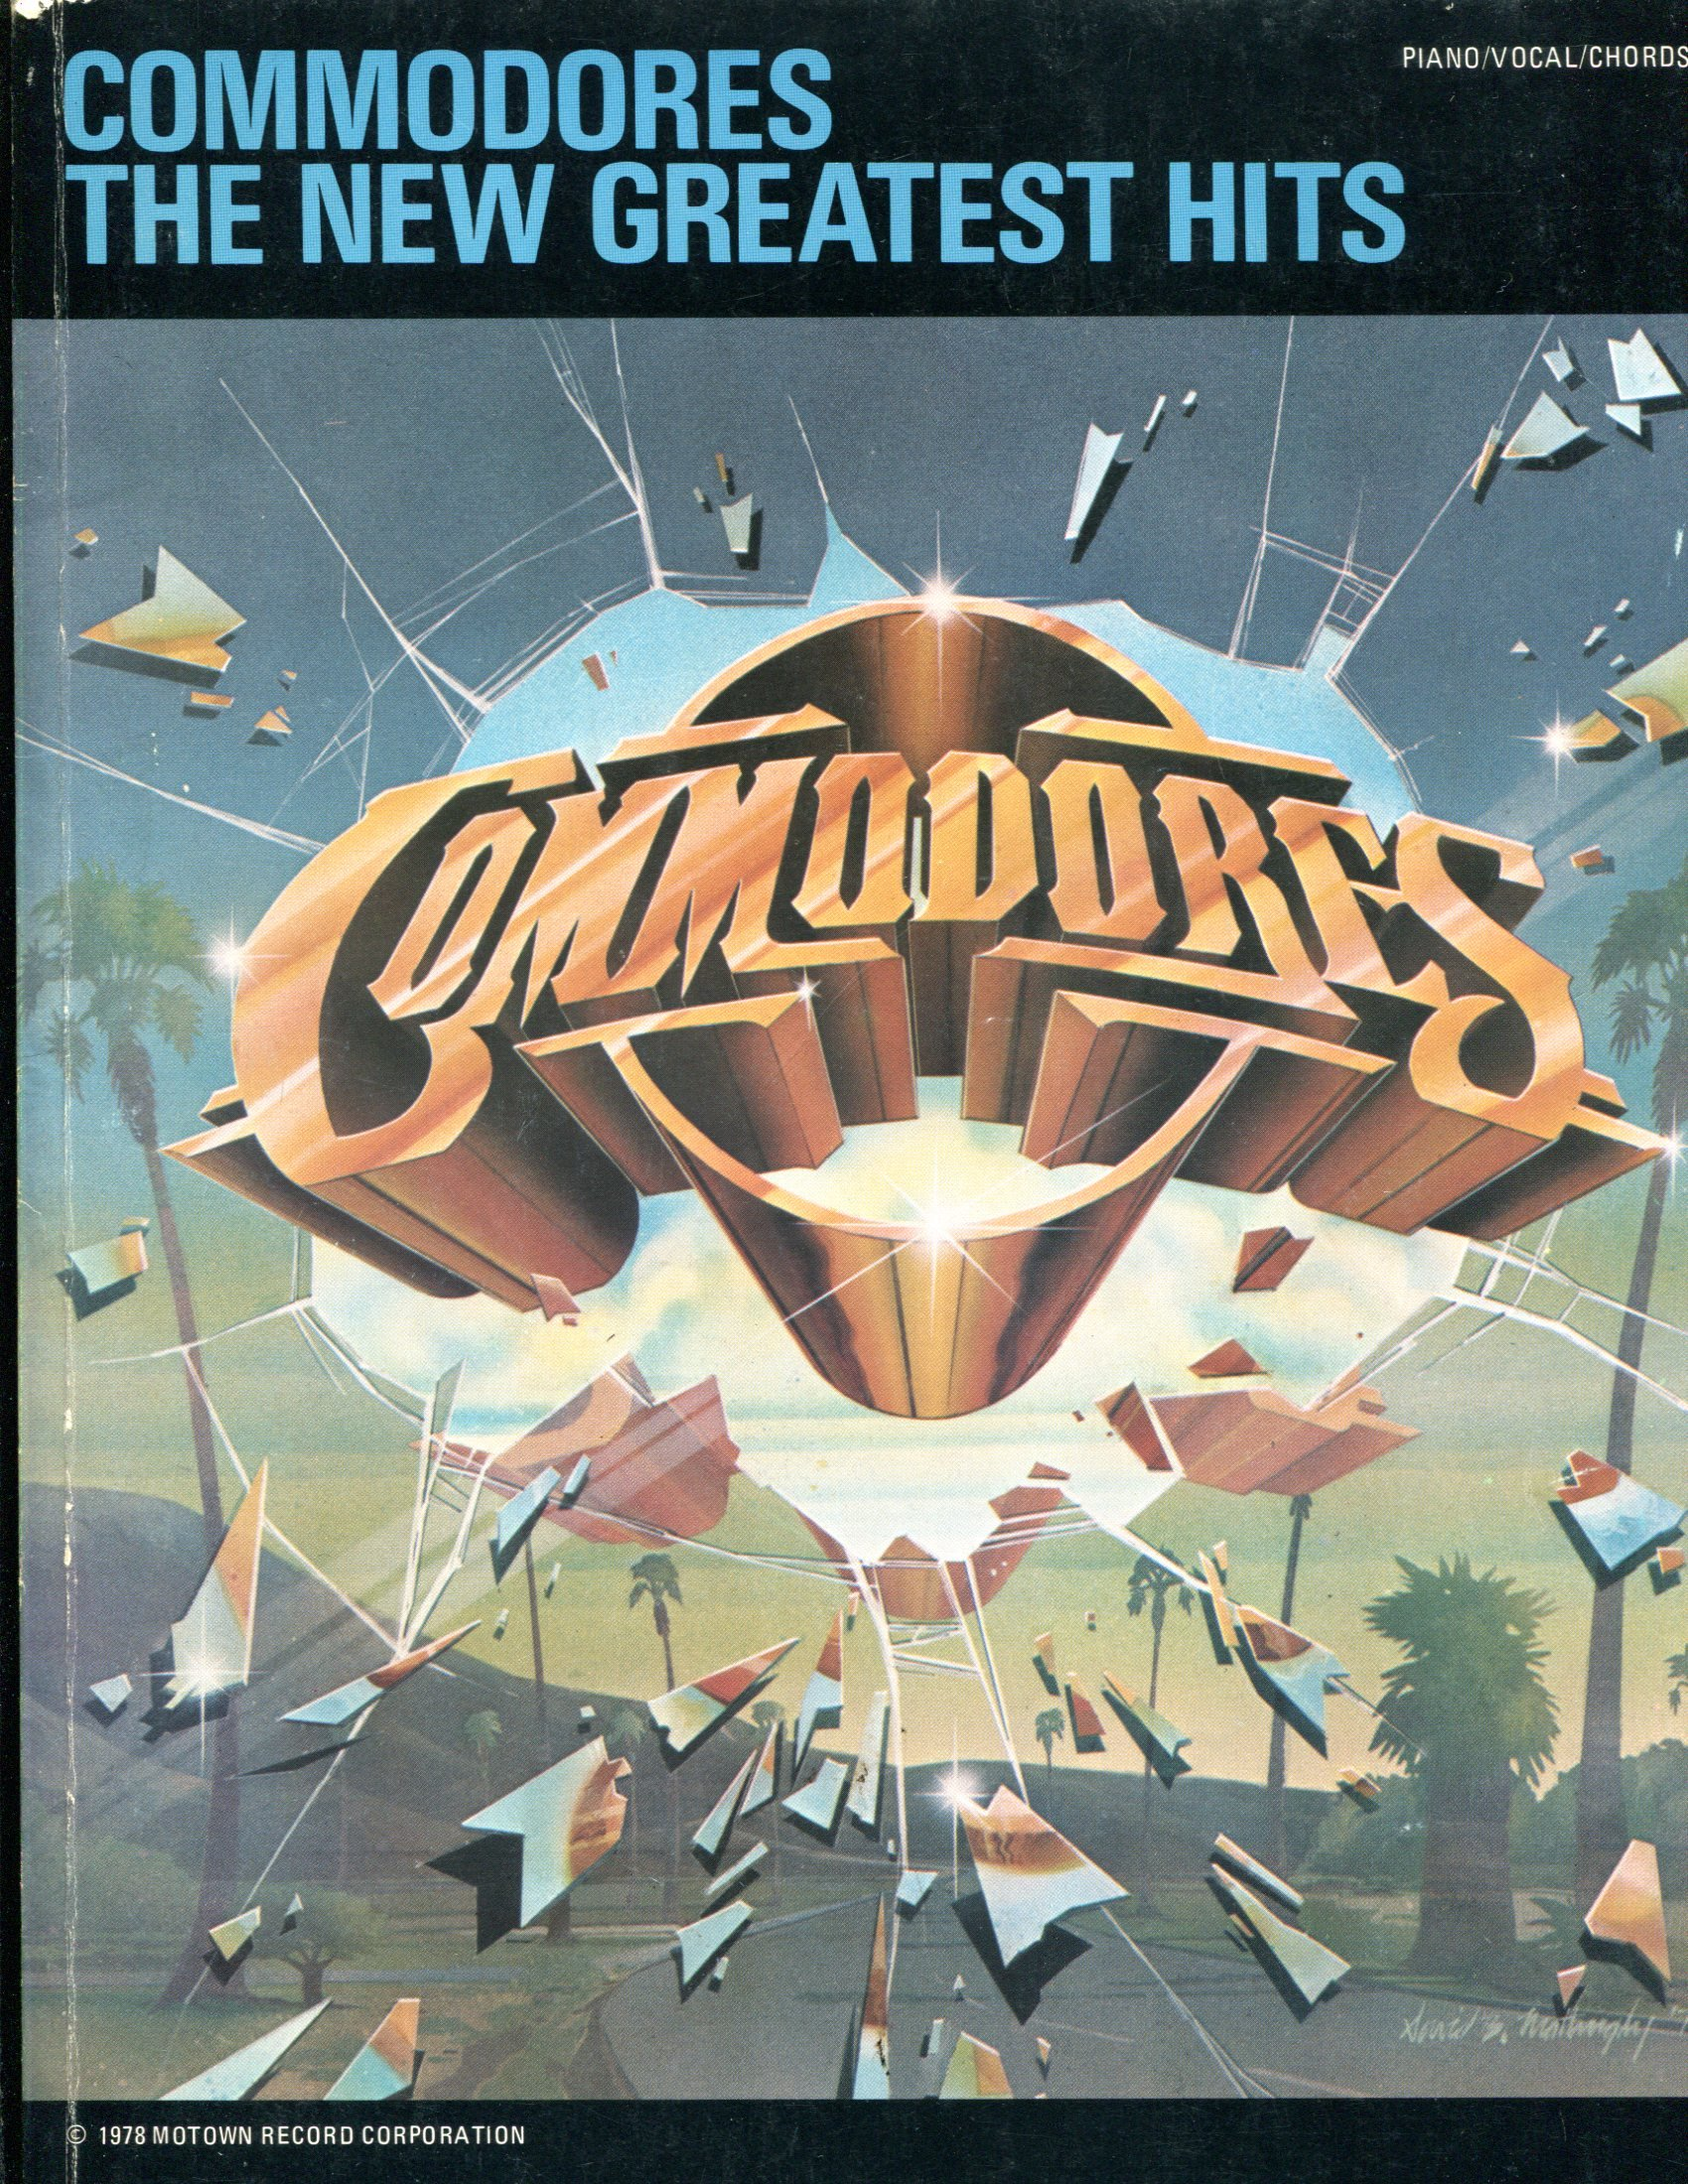 Commodores The New Greatest Hits Piano Vocal Chords Unknown